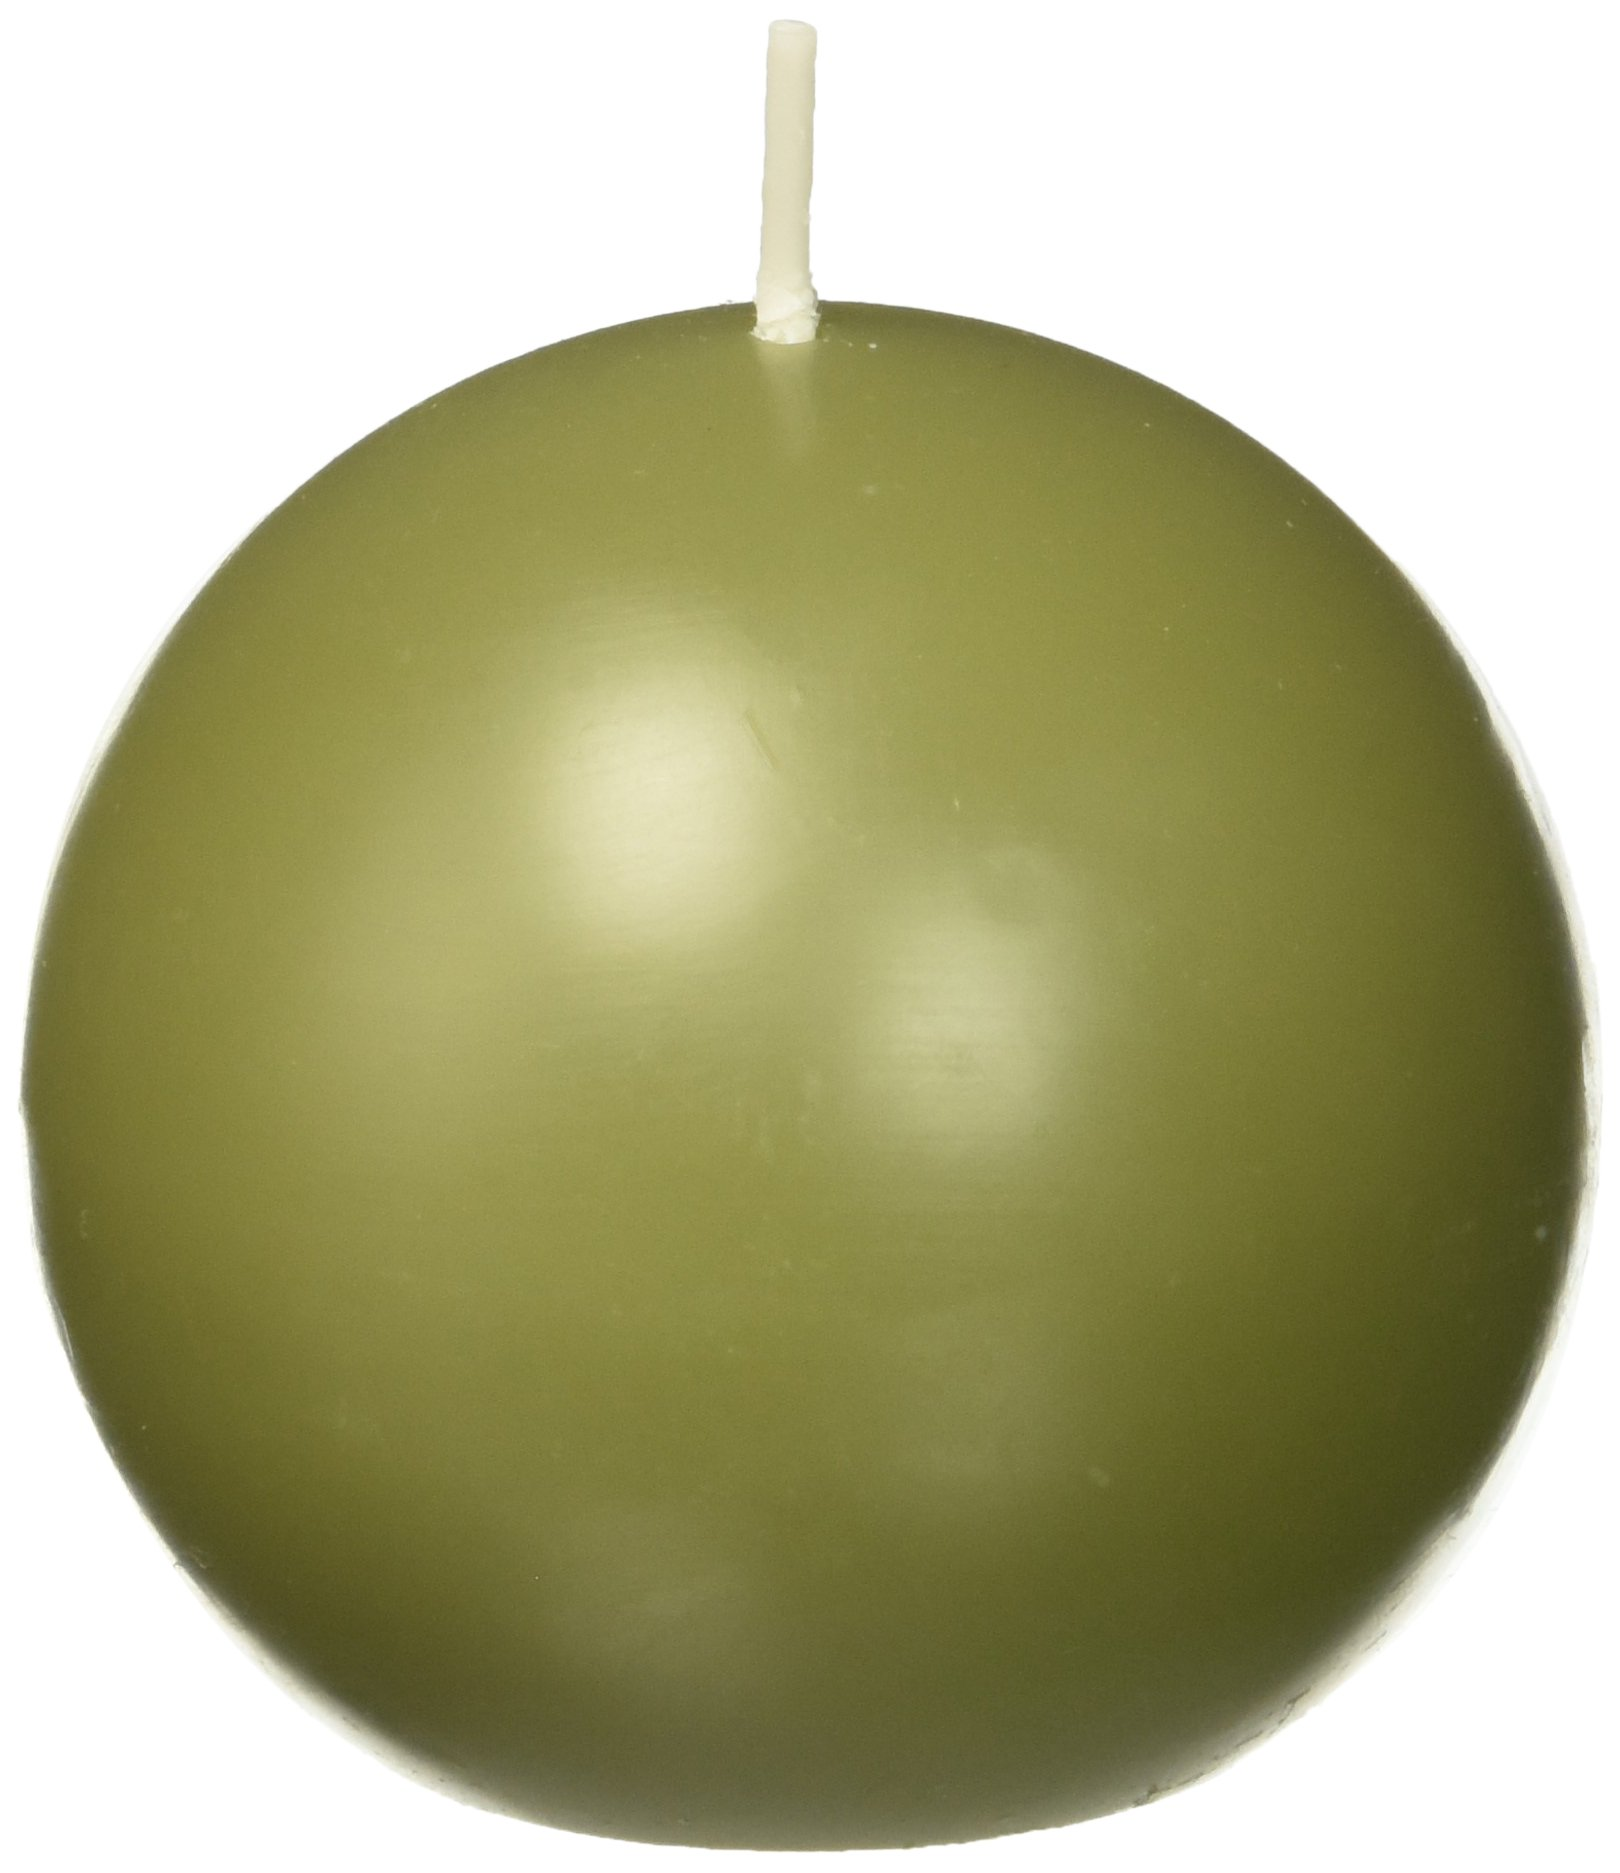 Zest Candle 6-Piece Ball Candles, 3-Inch, Sage Green